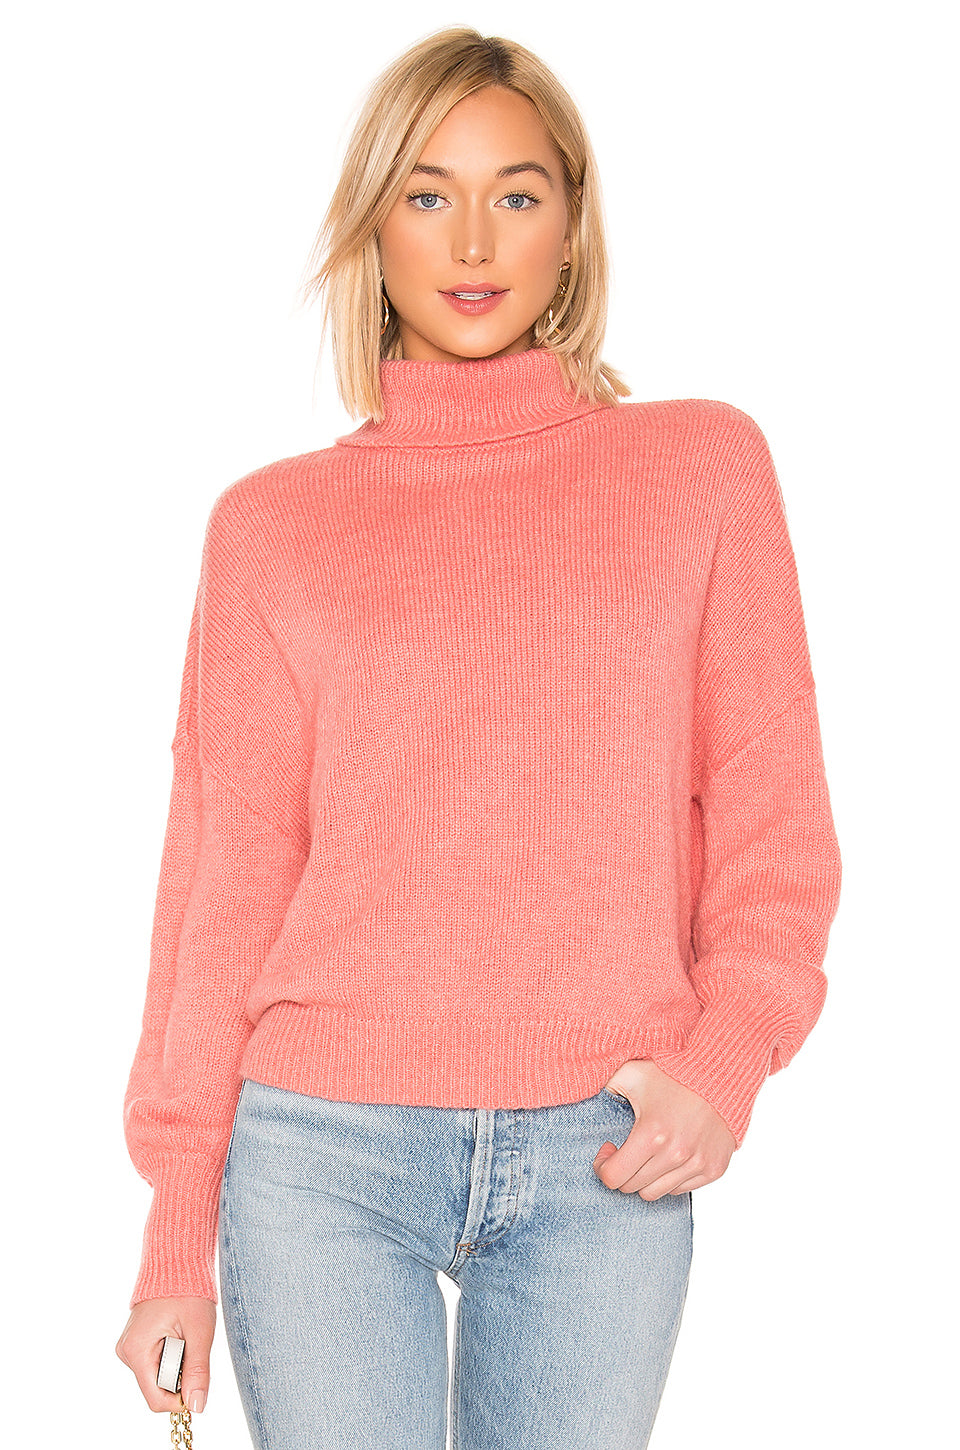 Cove Turtleneck